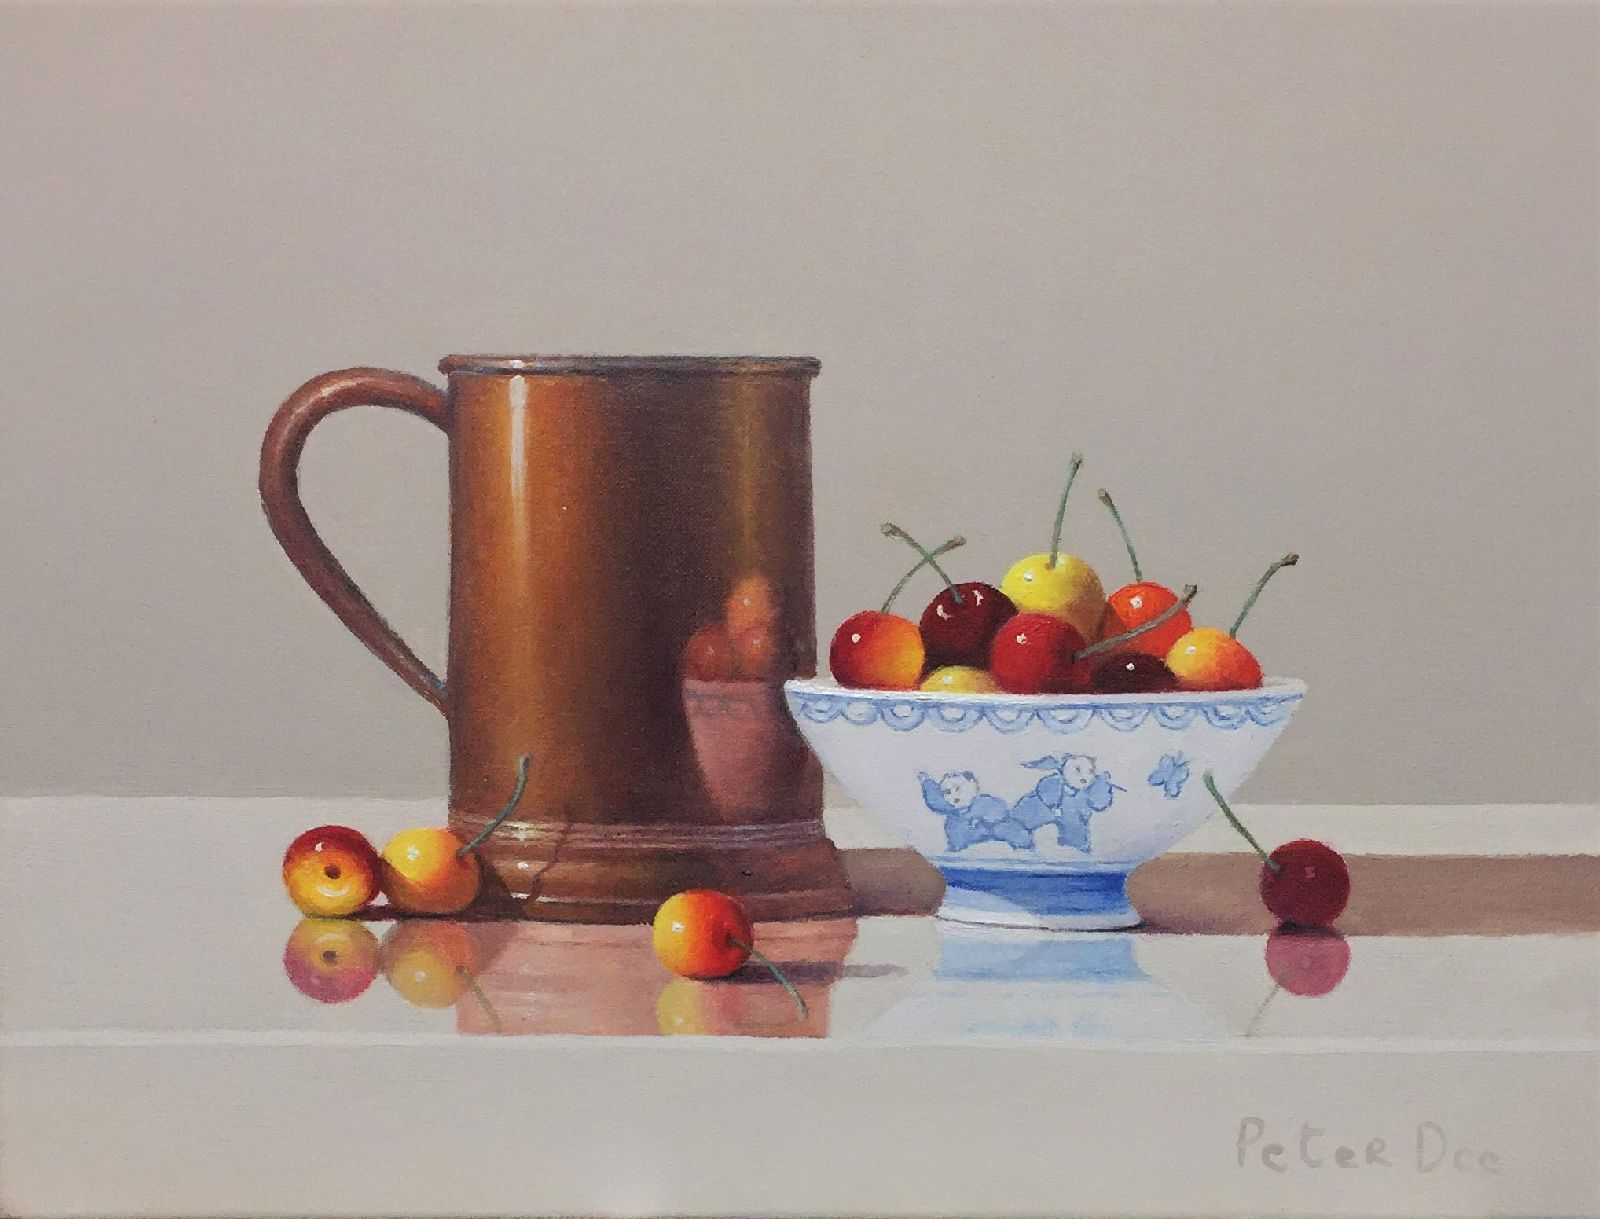 Still Life with Copper Tankard and Cherries  by Peter Dee